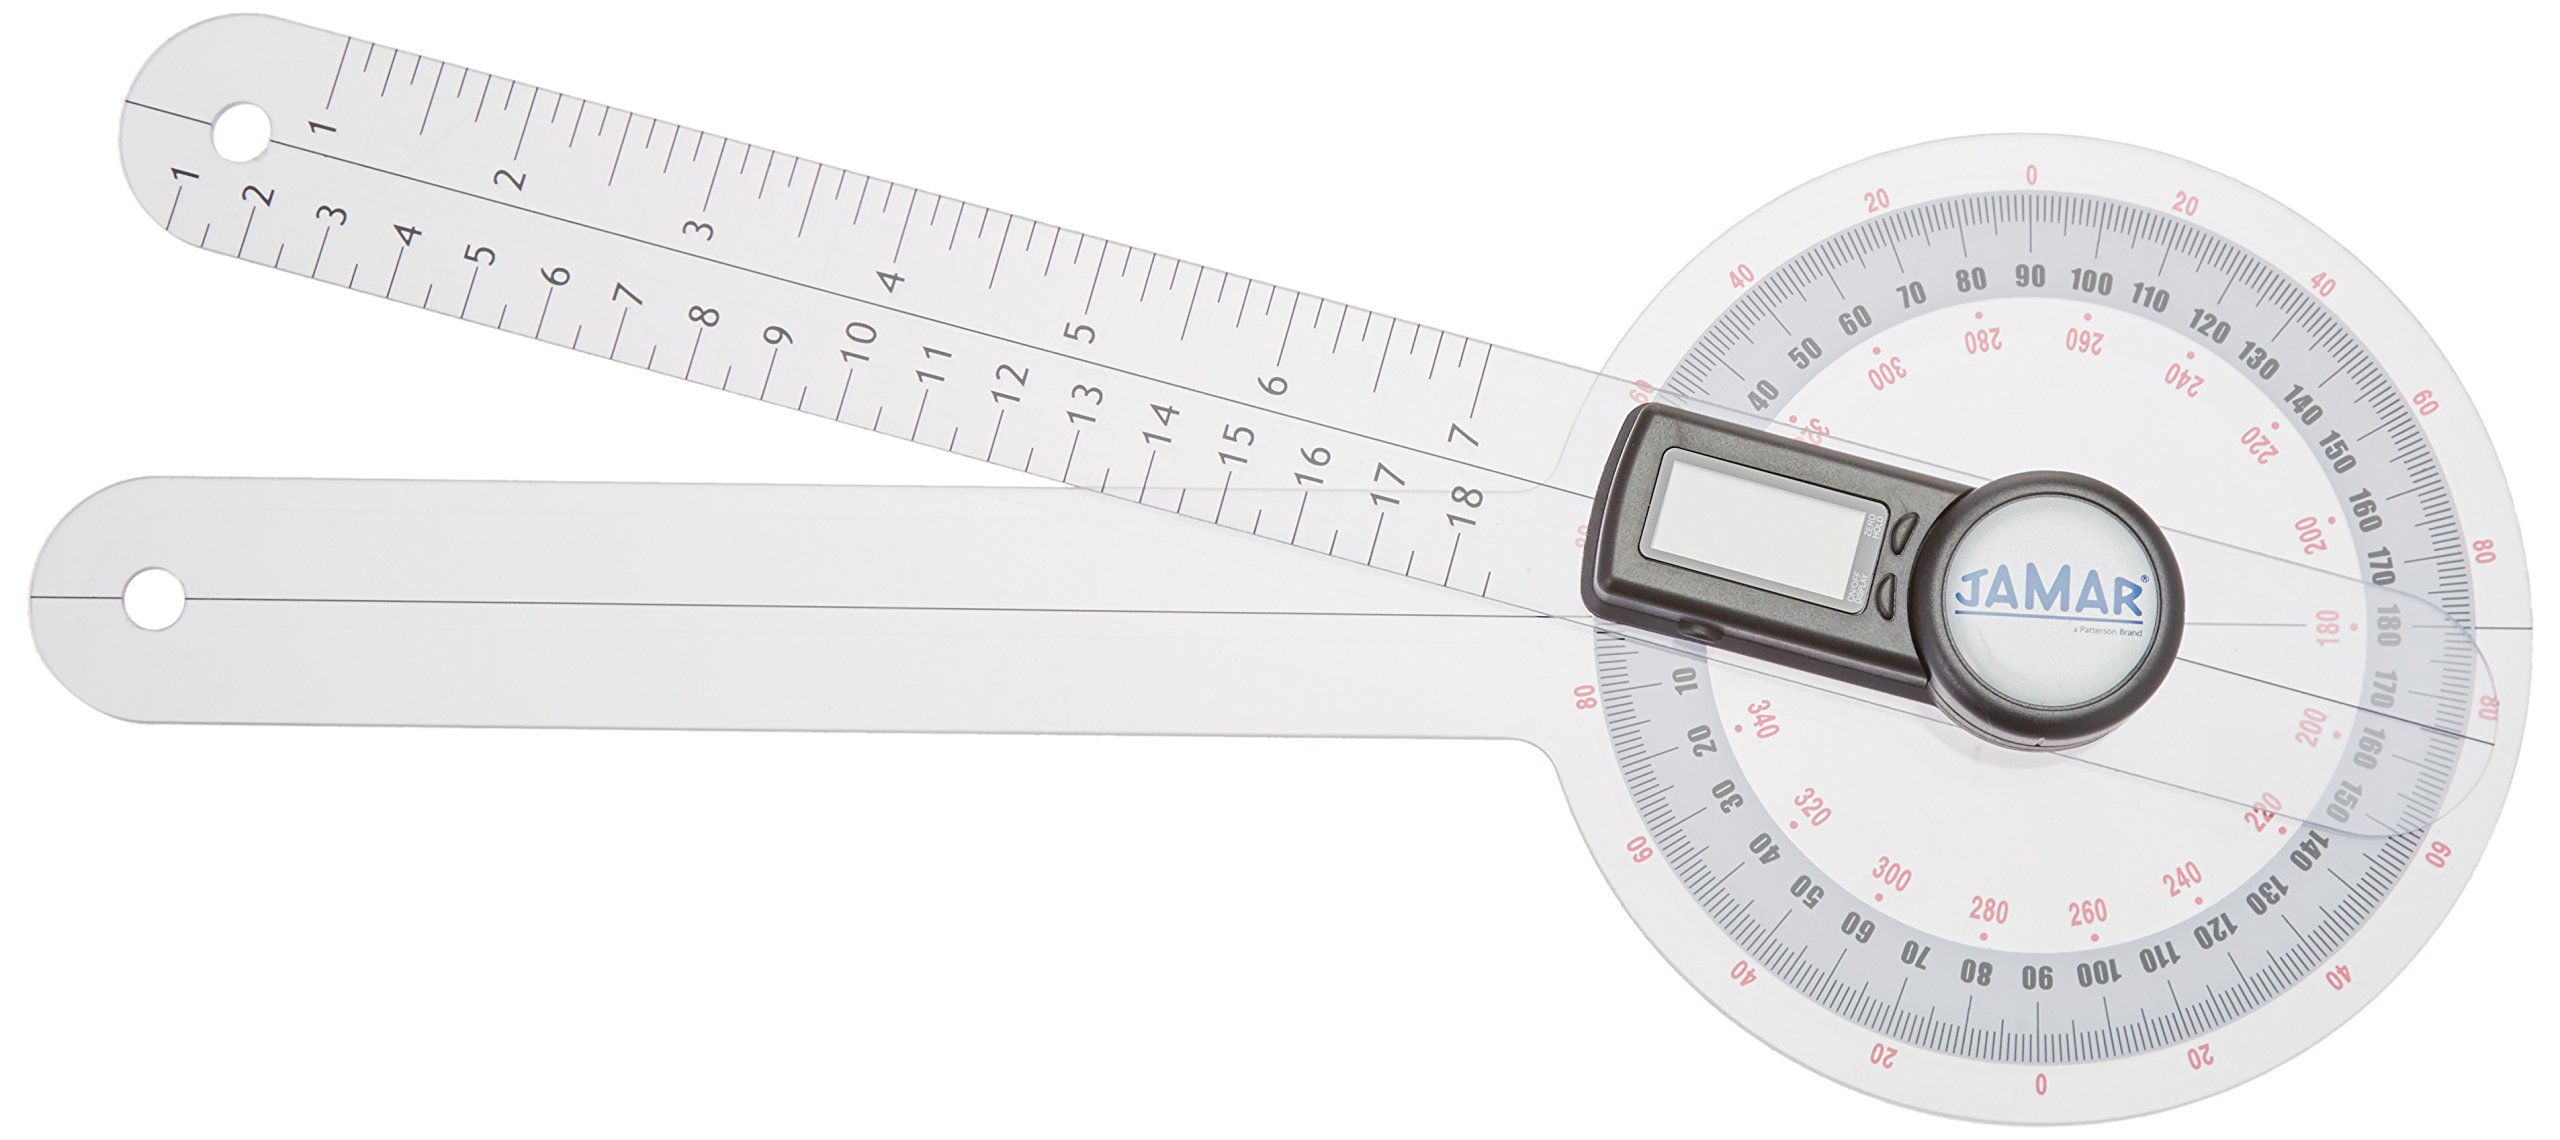 Jamar Plus+ Digital Goniometer, 12'', Orthopedic Professional Grade Digital Hand and Finger Range of Motion Tool for Accurate Angle Measuring, Protractor for Inch & Centimeter Linear Measurement